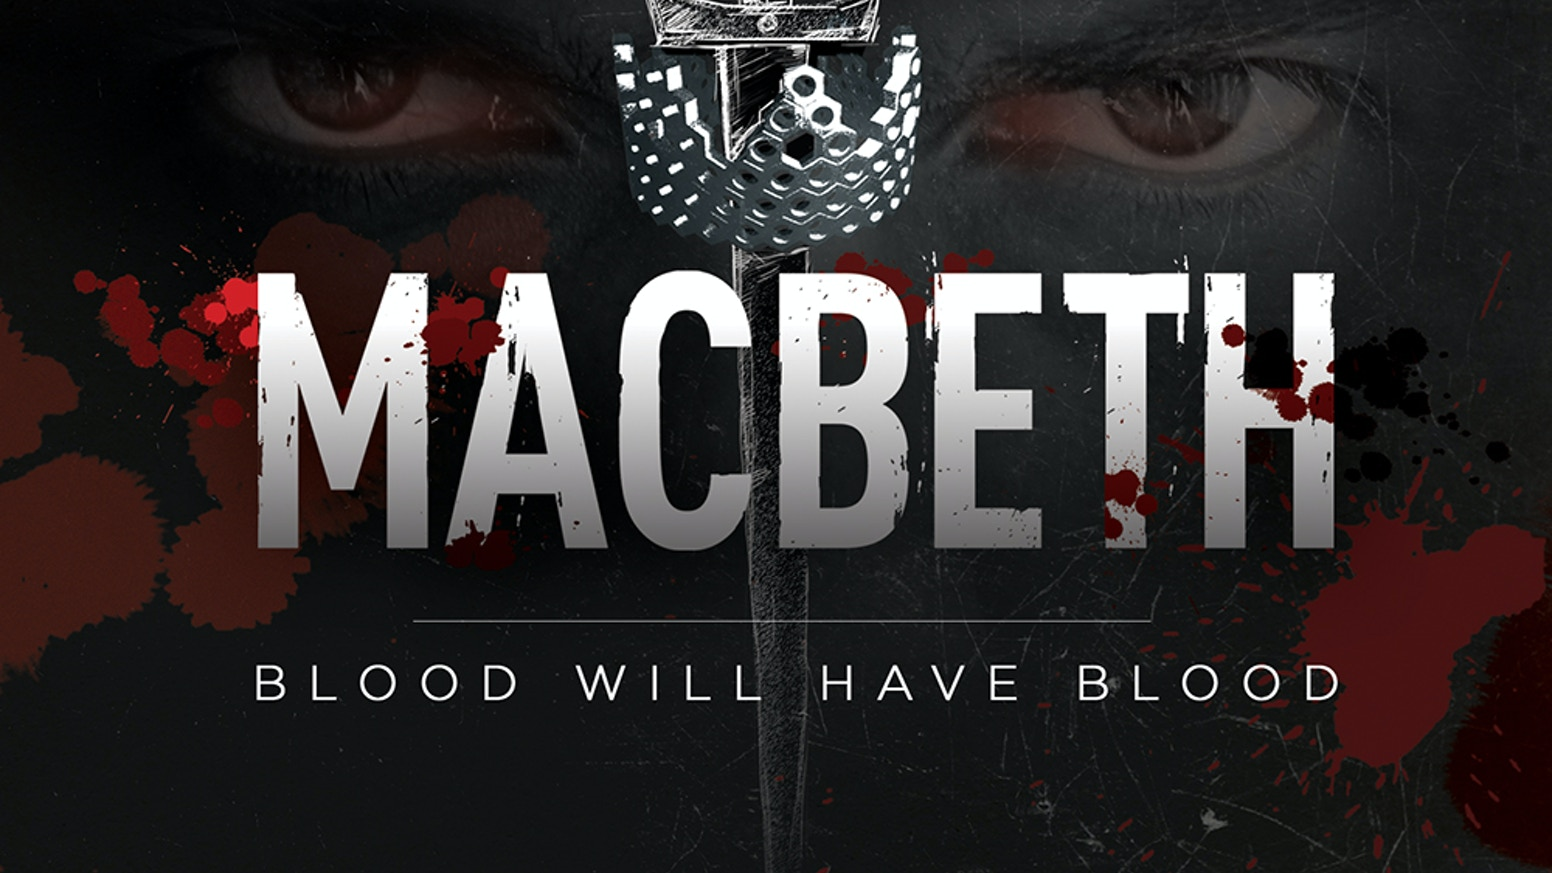 macbeth blood will have blood Macbeth and blood macbeth essay i am going to prove that in the play macbeth, a symbol of blood is portrayed often(and with different meanings), and that it is a symbol that is developed until it is the dominating theme of the play towards the end of it.